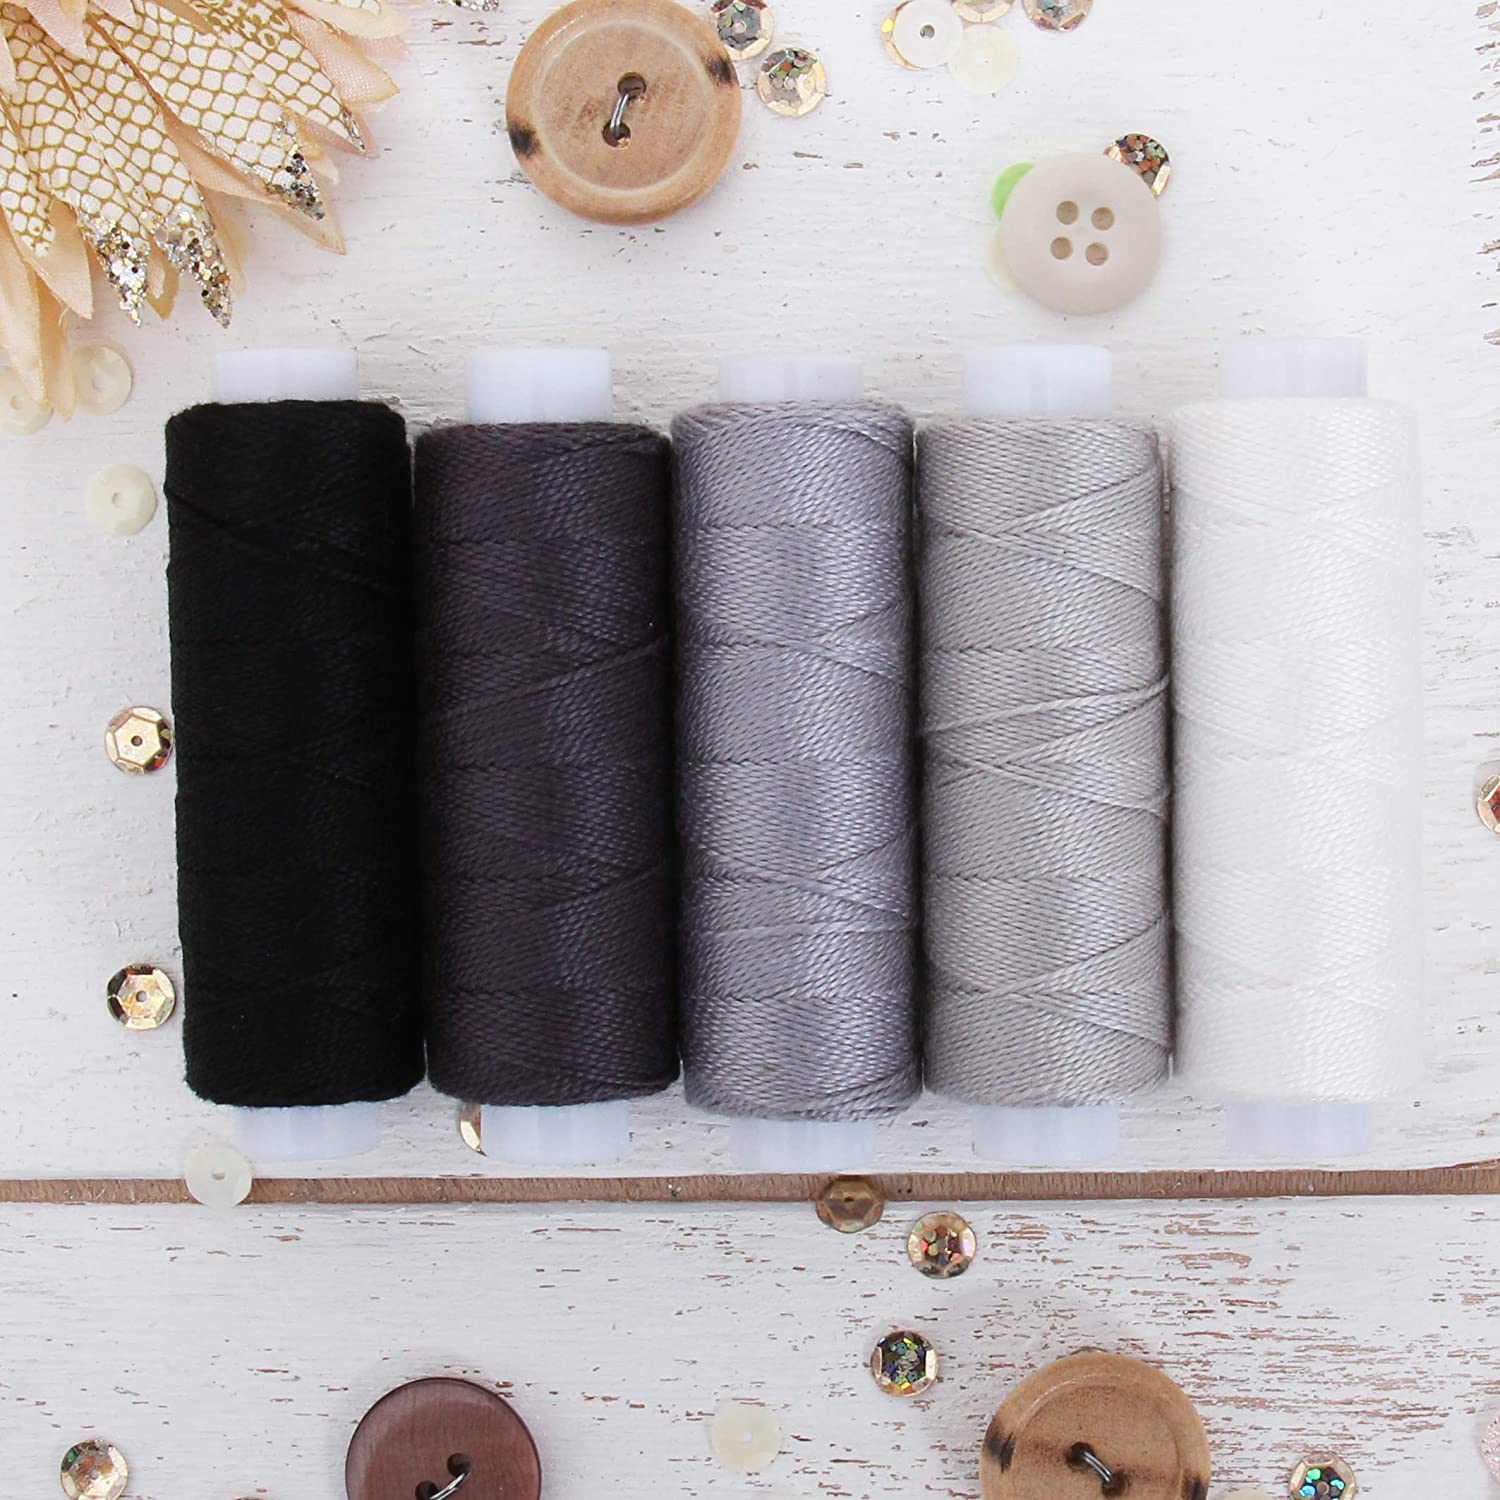 Hand Embroidery Perle Cotton for Friendship Bracelets 5 Grey Shades Needlepoint Crochet 75yd Spools Size 8 Cross Stitch Threadart 5 Color Pearl Cotton Thread Set Grey Shades